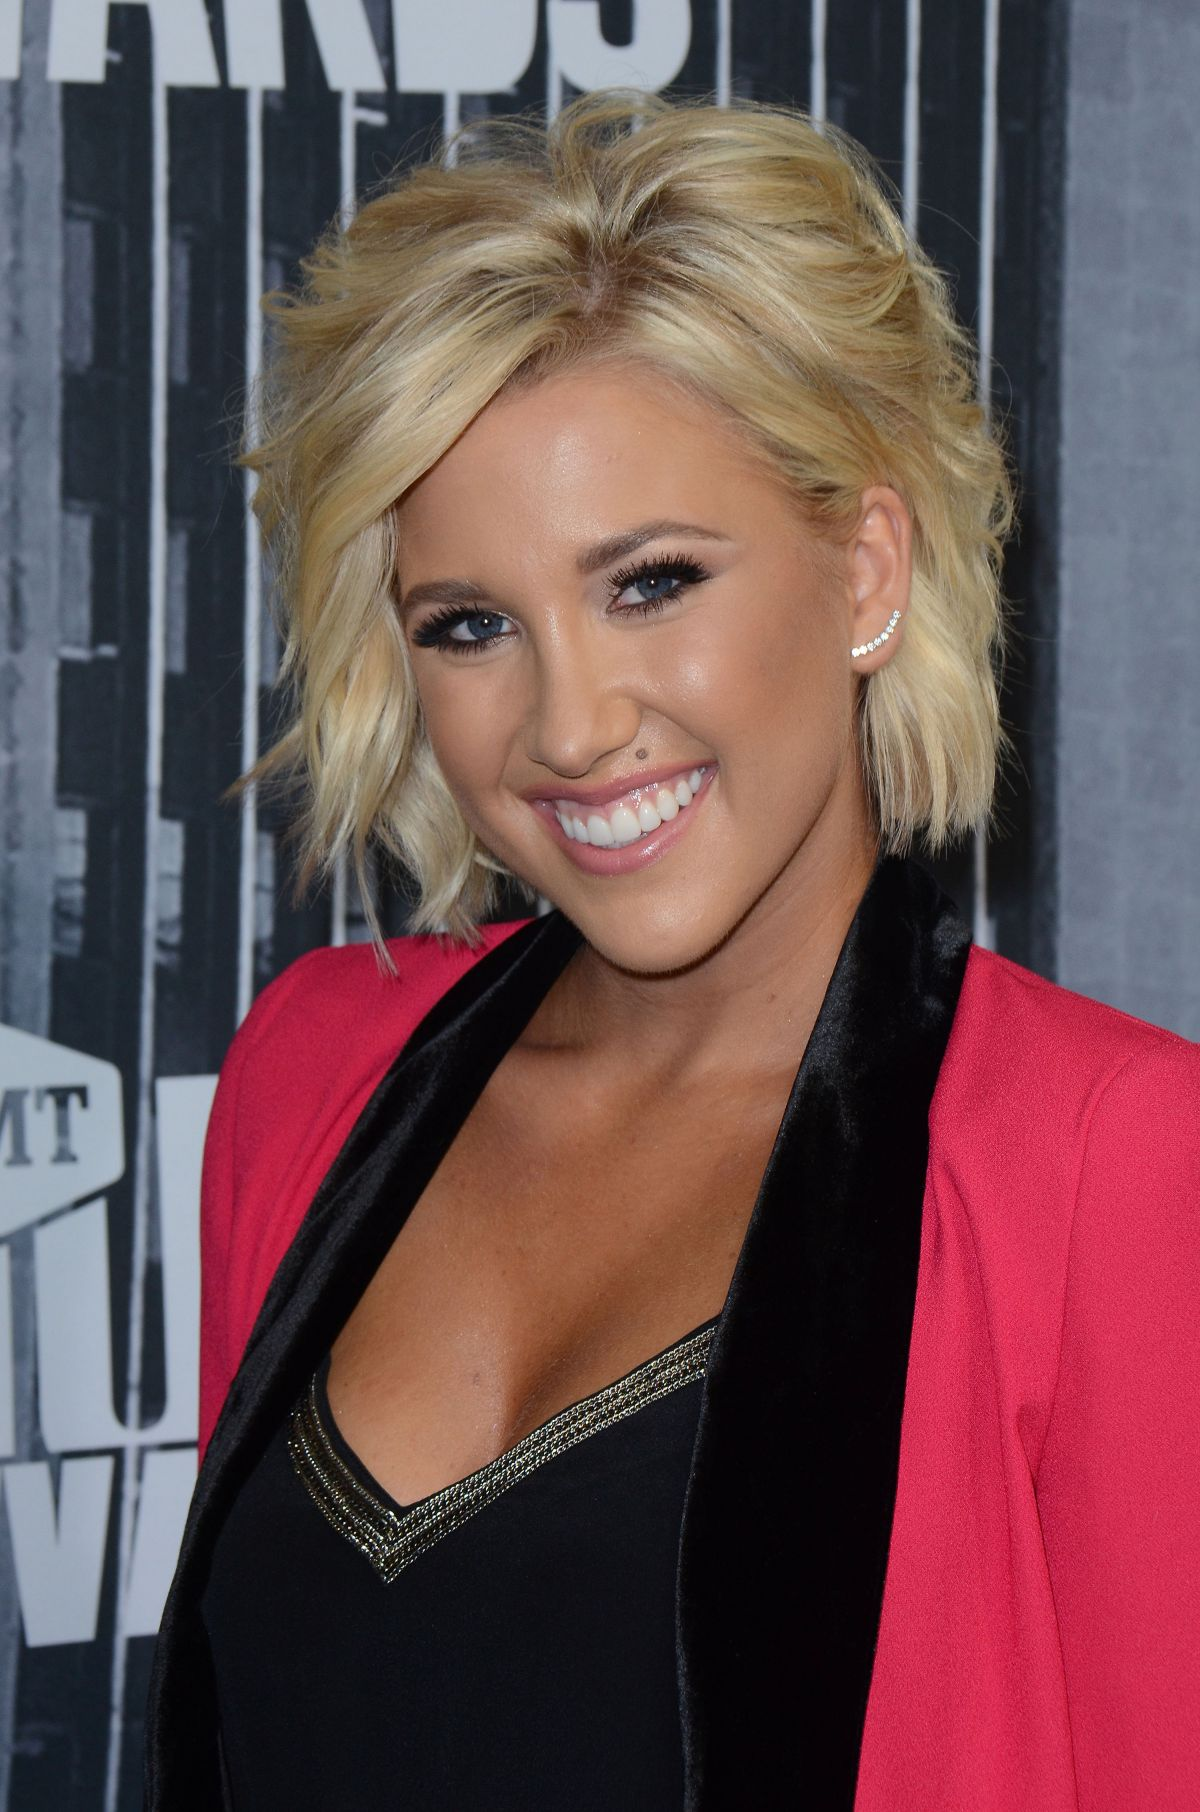 SAVANNAH CHRISLEY at CMT Music Awards in Nashville 06/07/2017